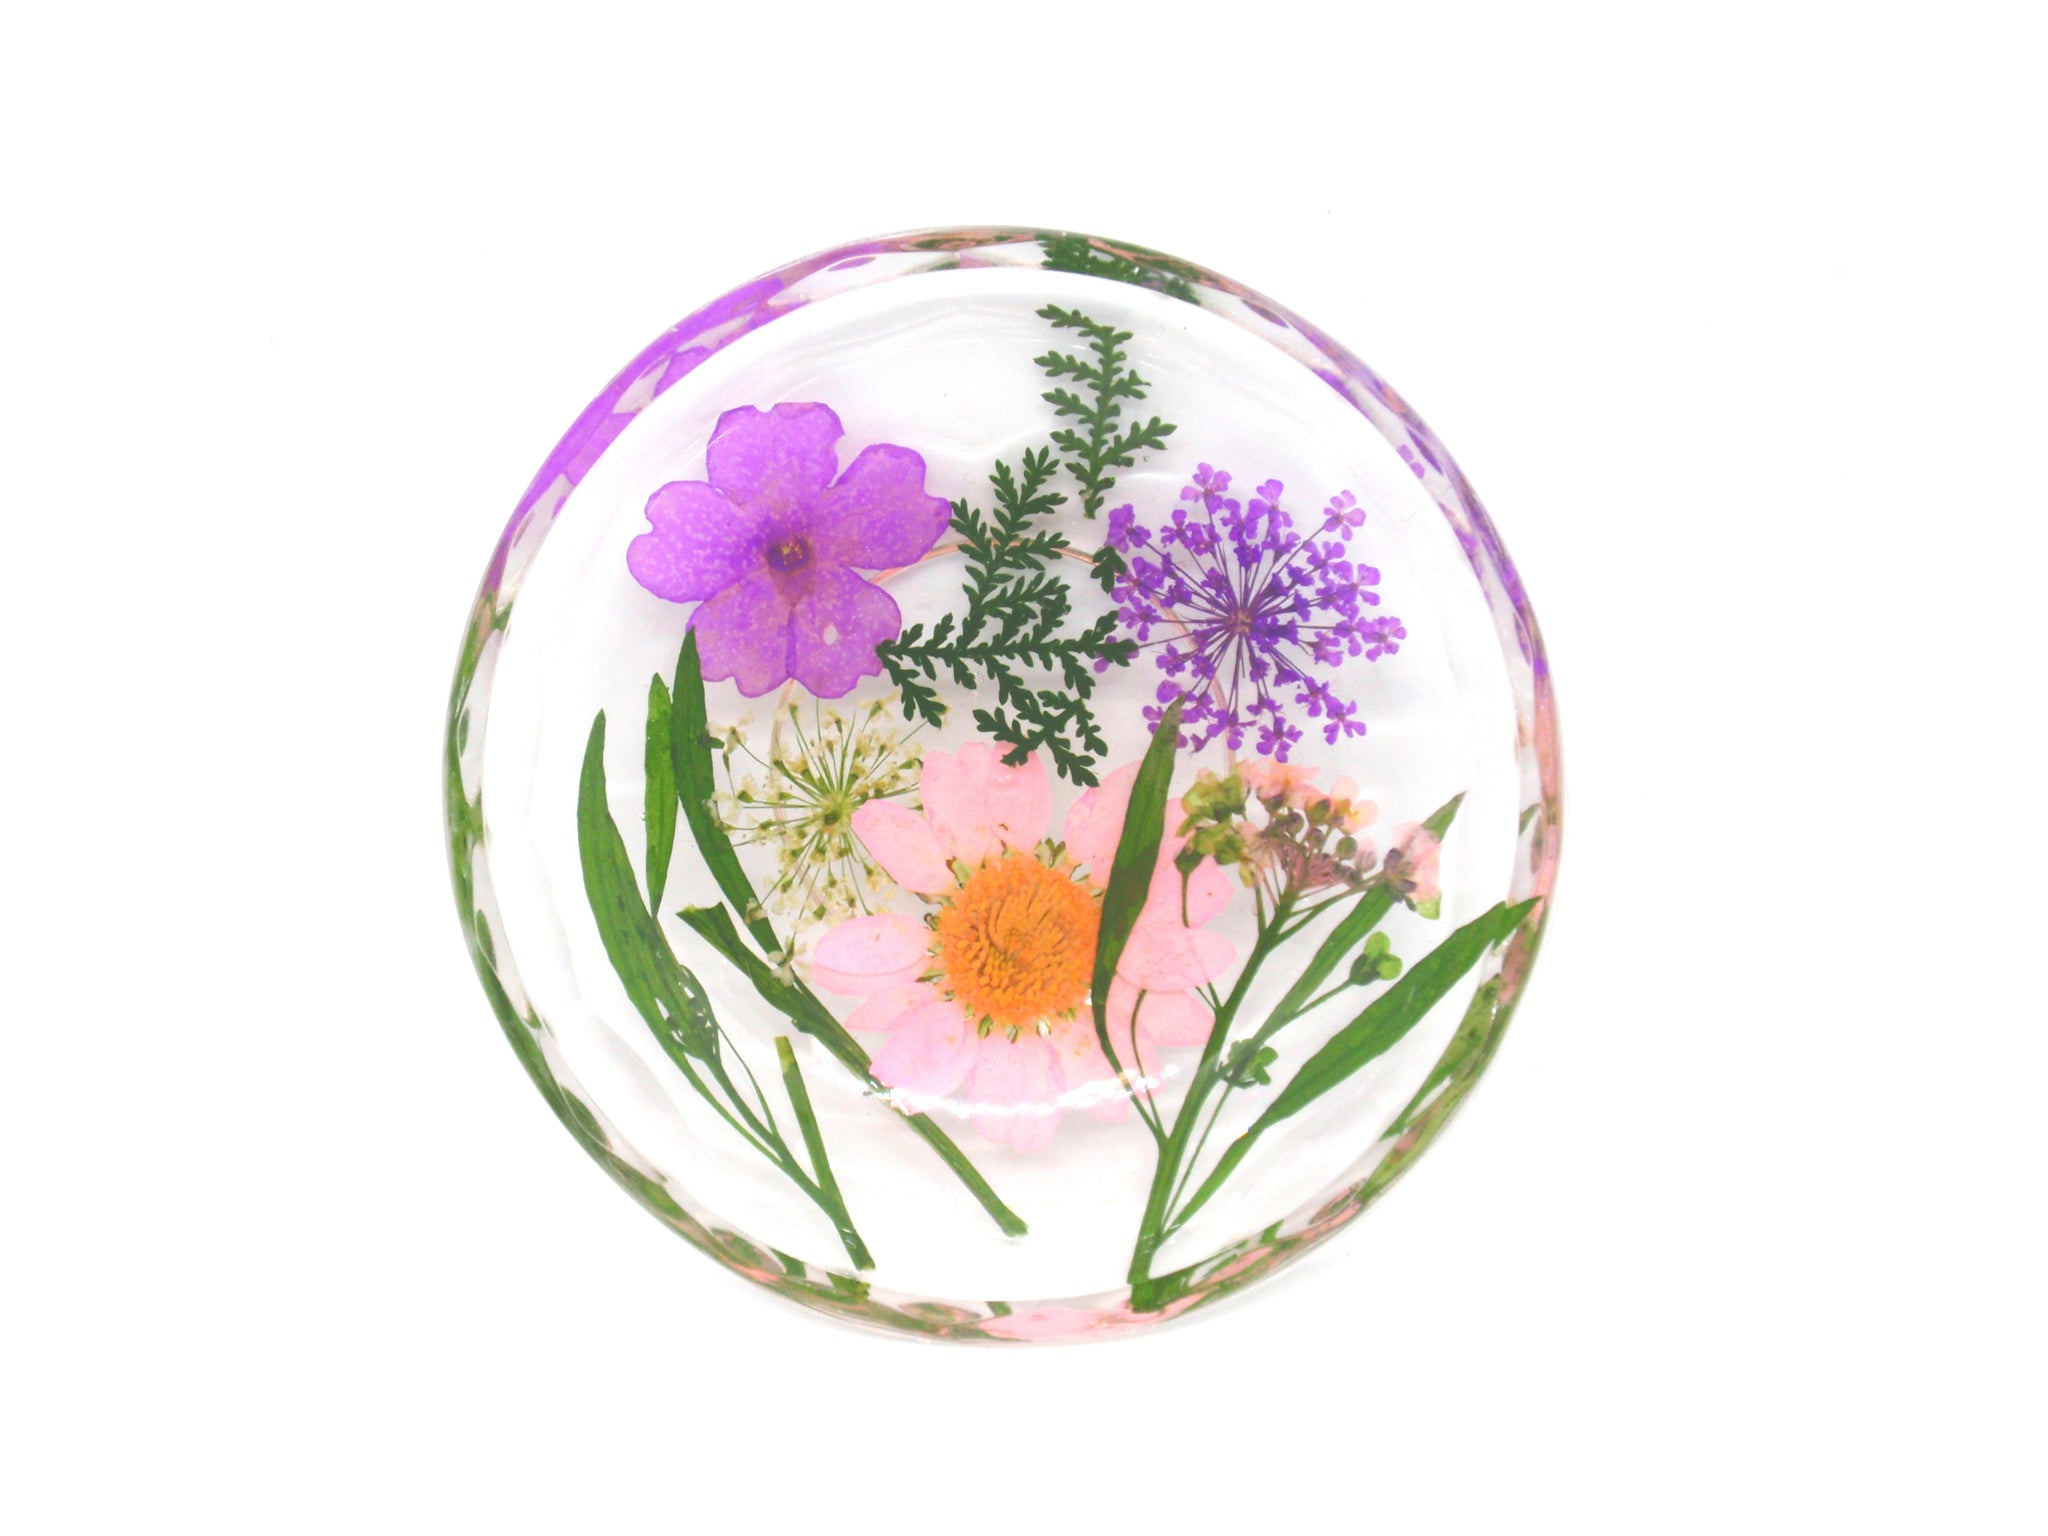 Real flower ring dish, decorative resin trinket dish